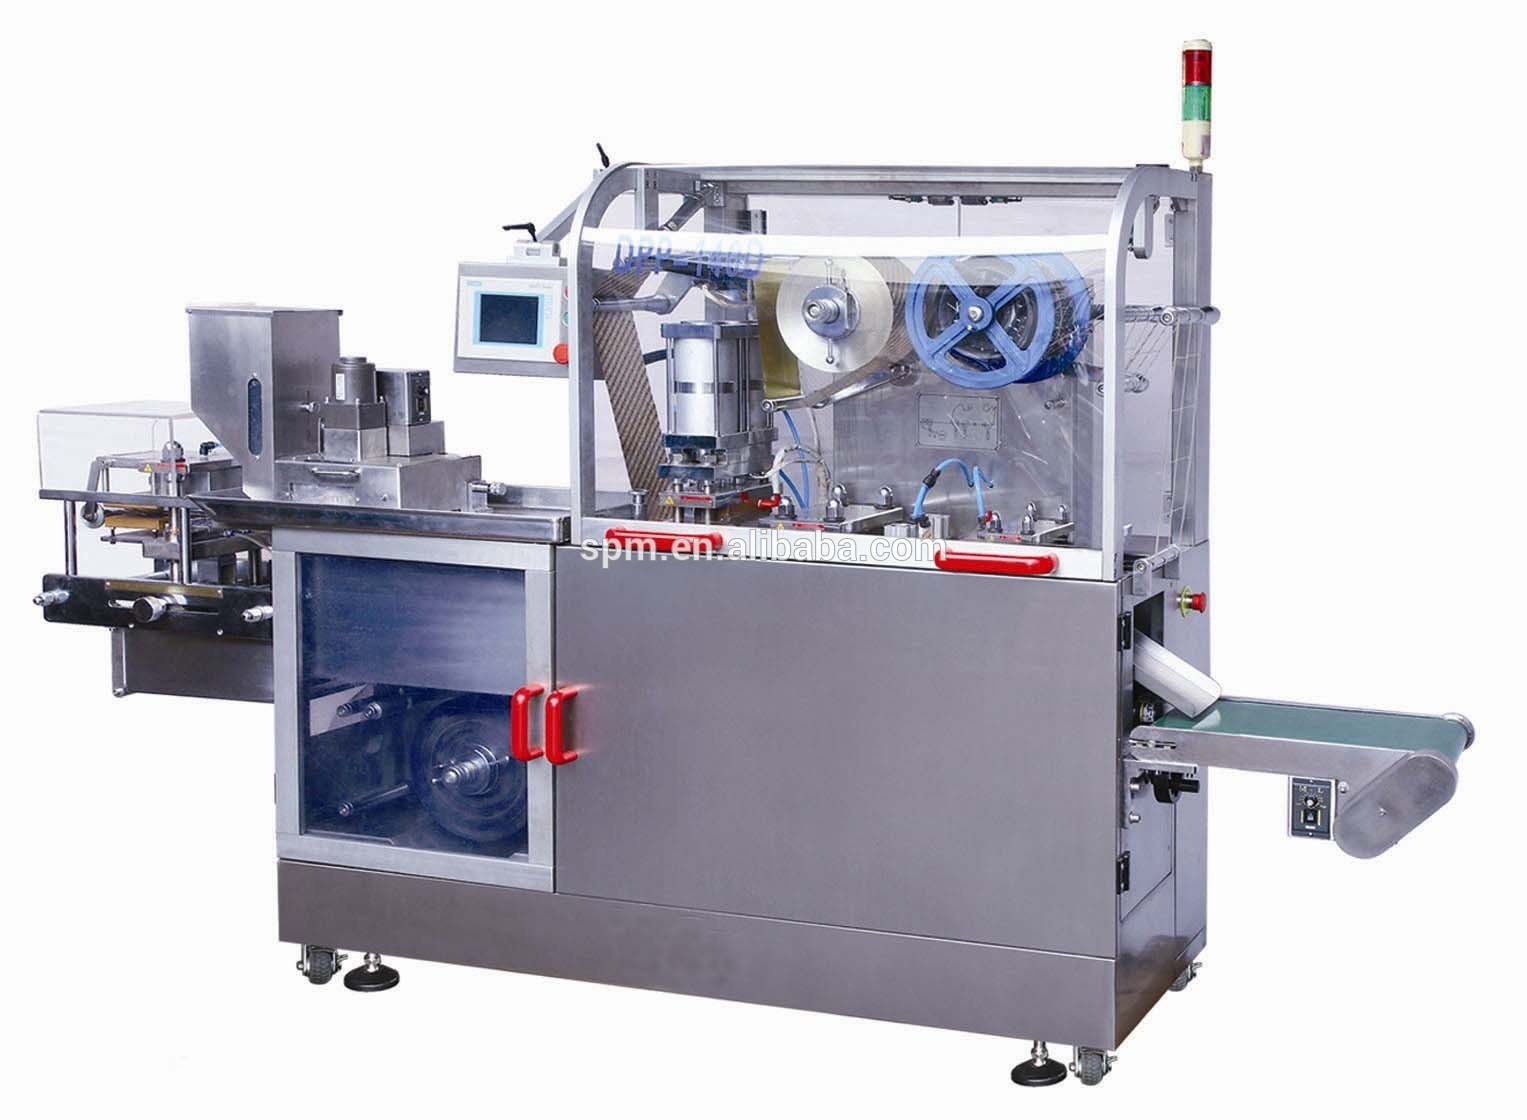 Dpb-140 Flat Plate Automatic Blister Packing Machine